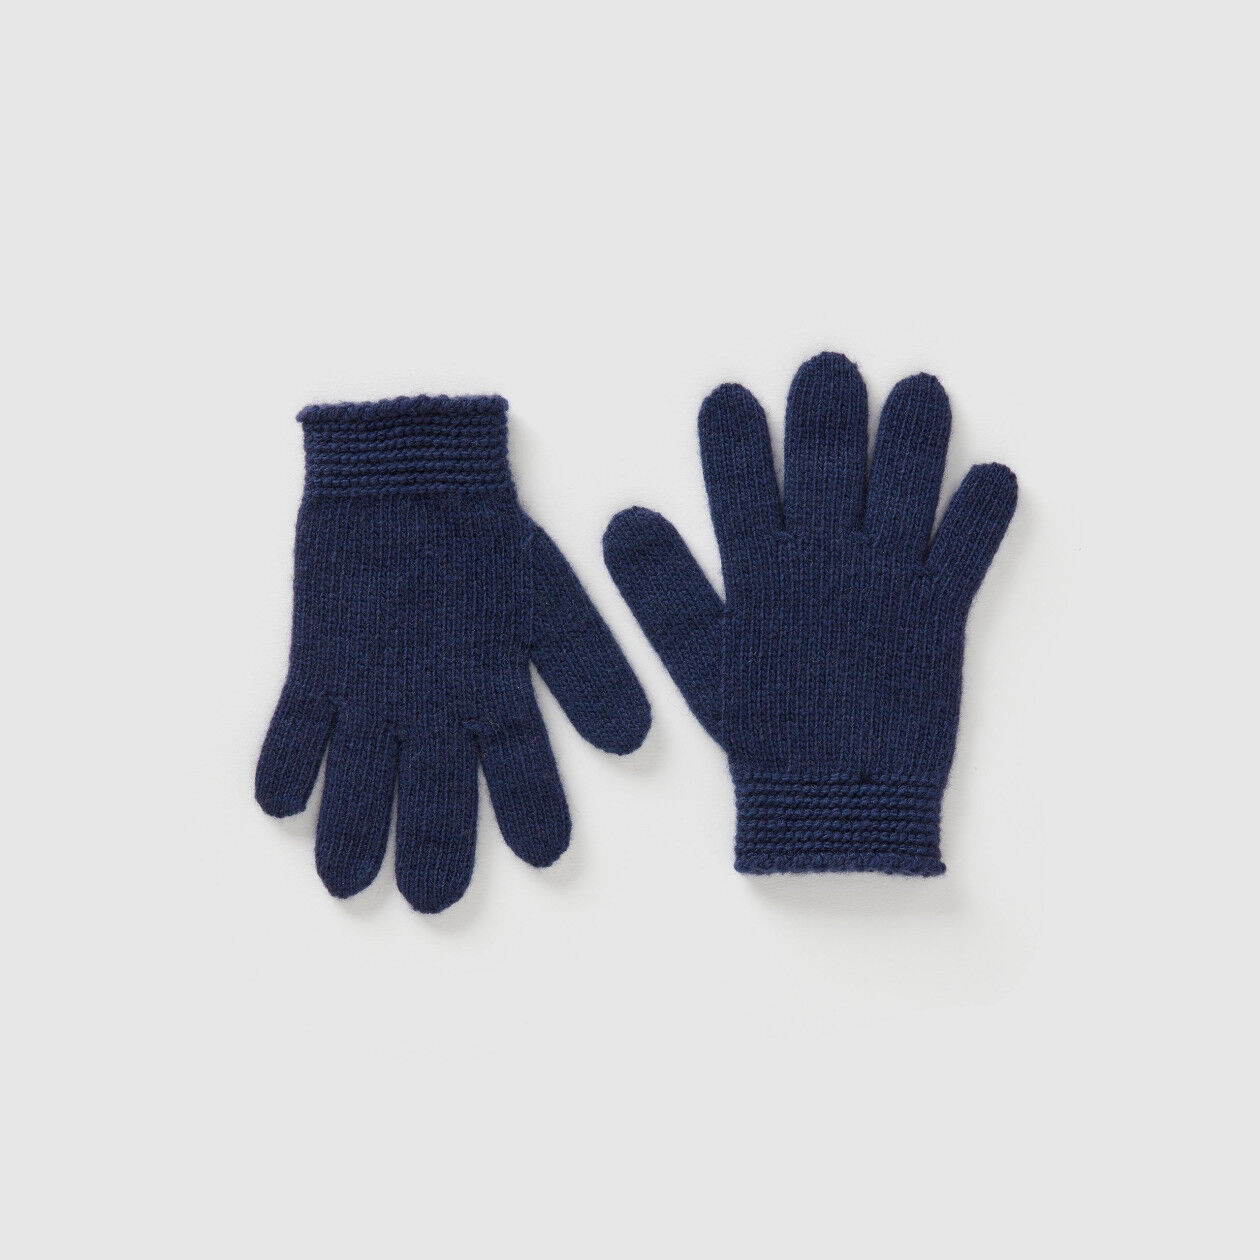 Gloves in solid colored wool